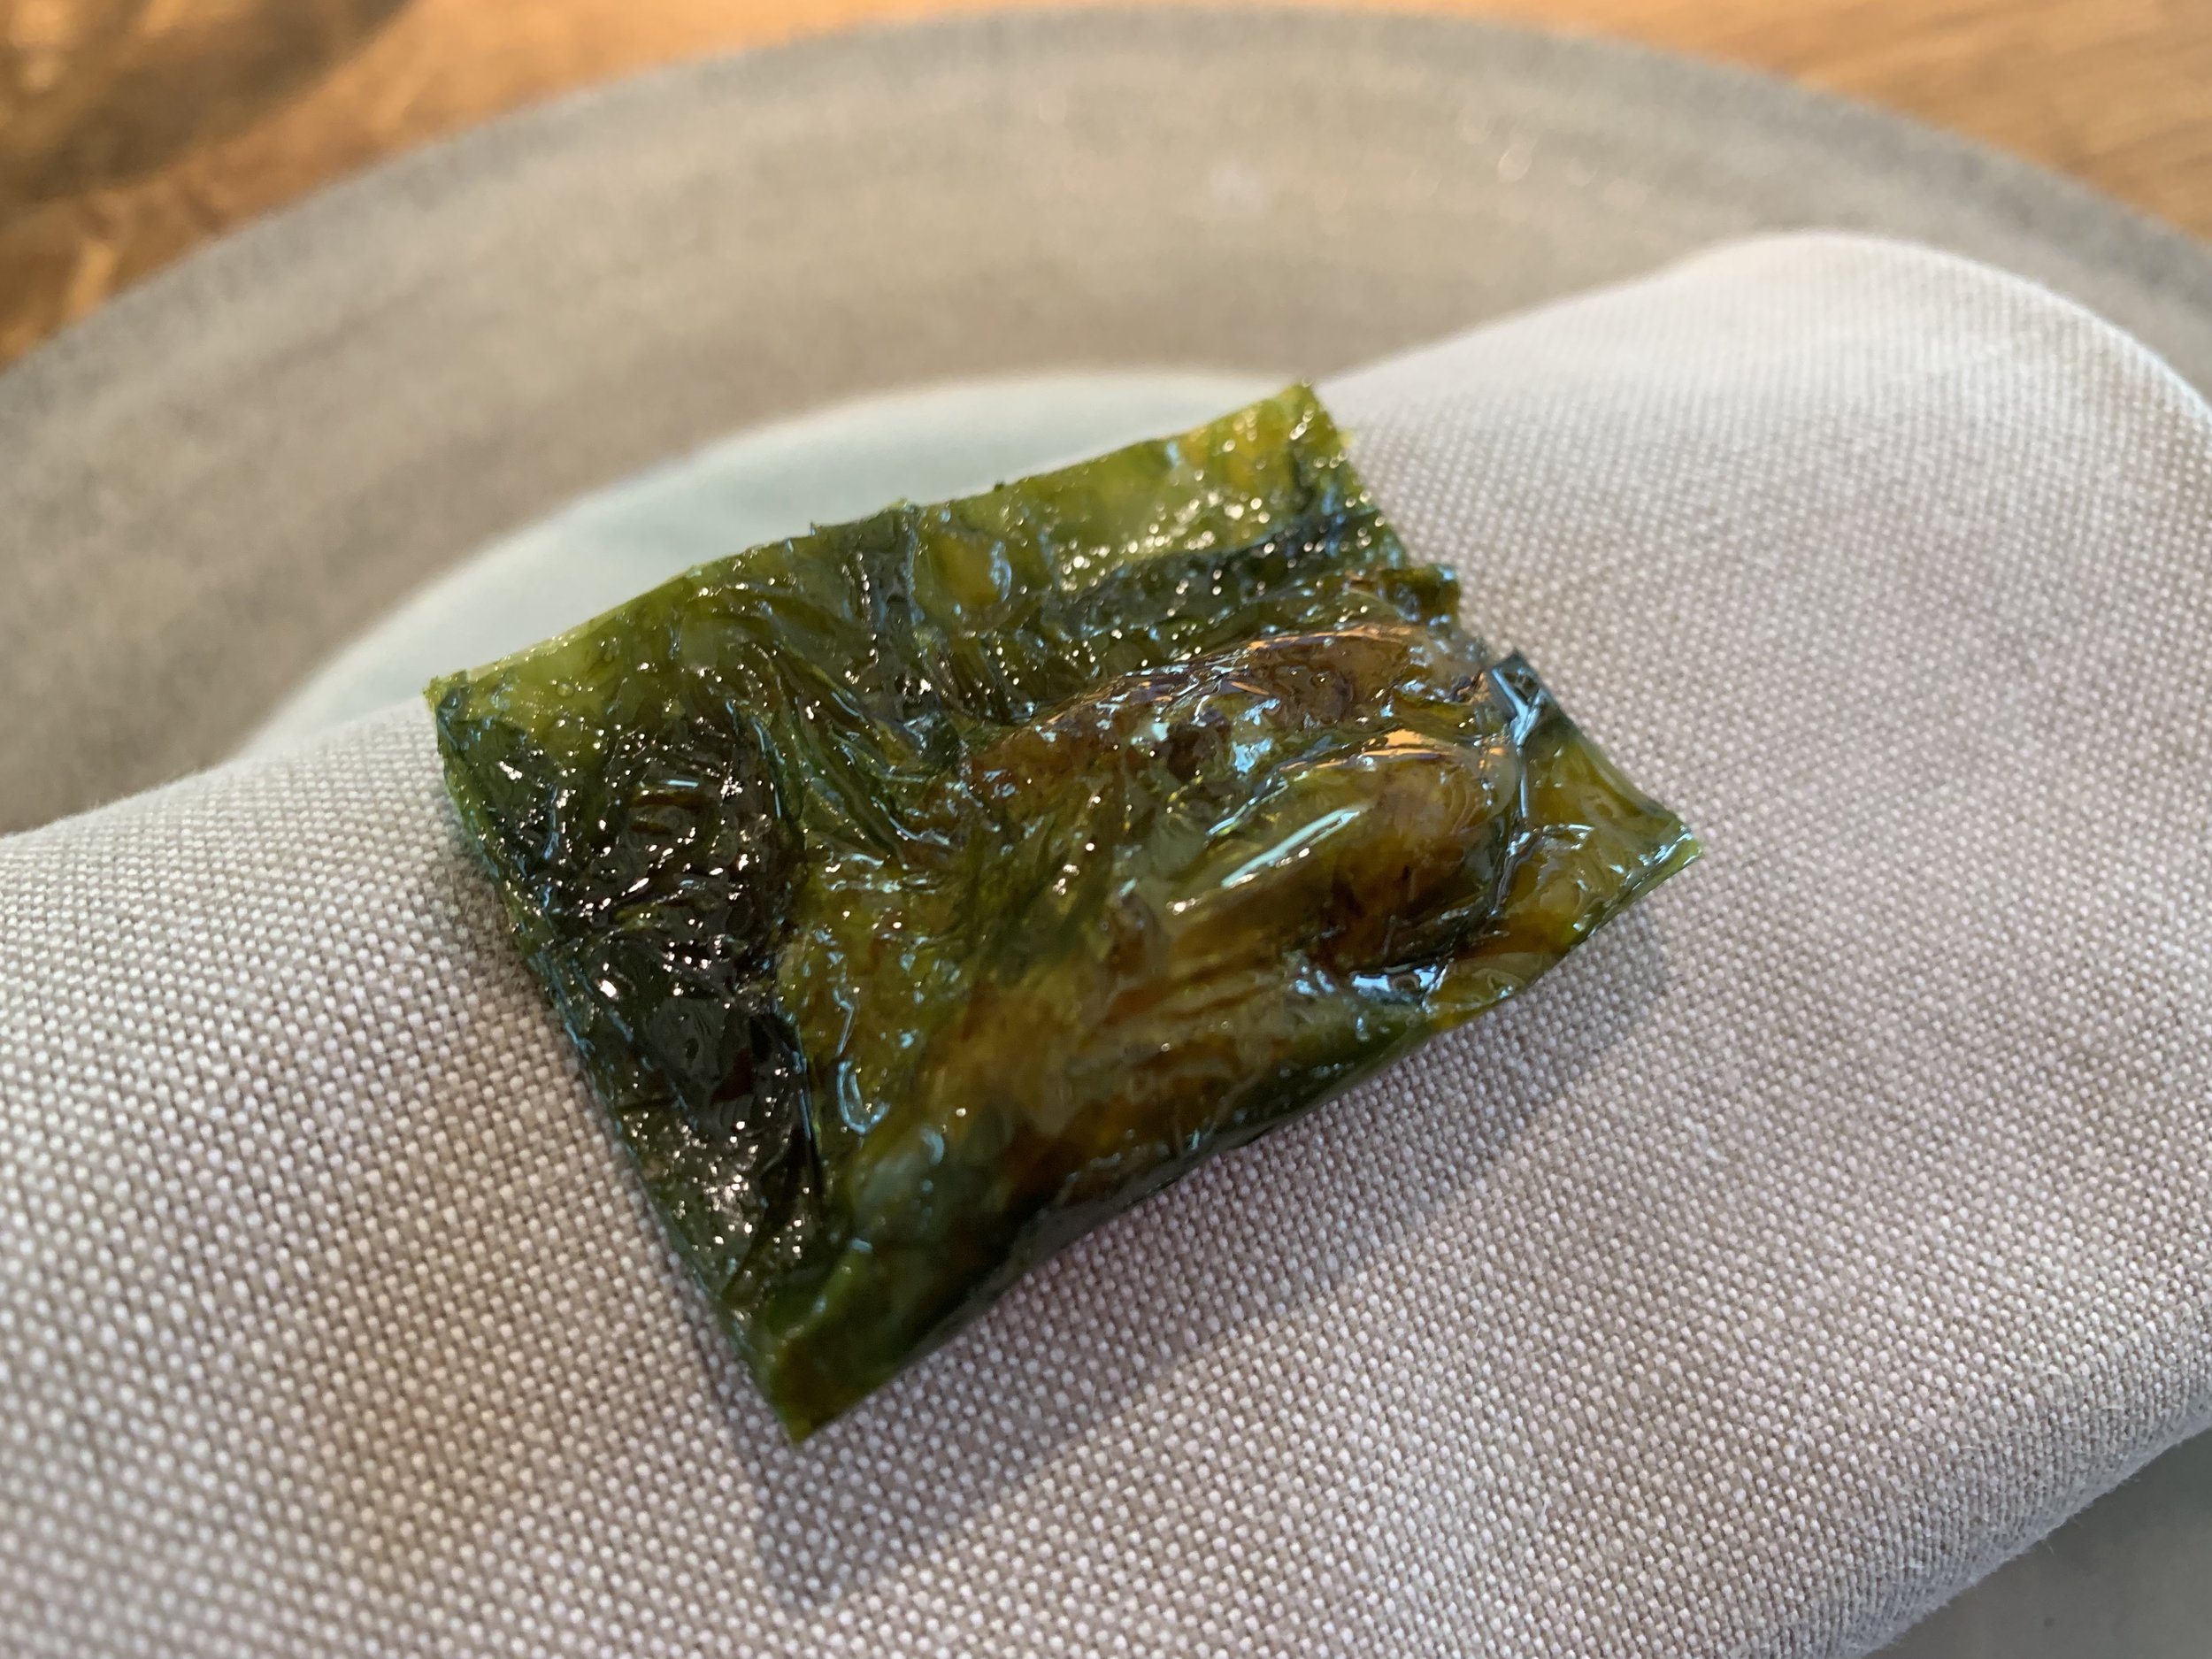 Grey Shrimp Cooked with sea Lettuce - This was described as a lettuce ravioli, and it was one of the best bites of the night. A danish shrimp ravioli.